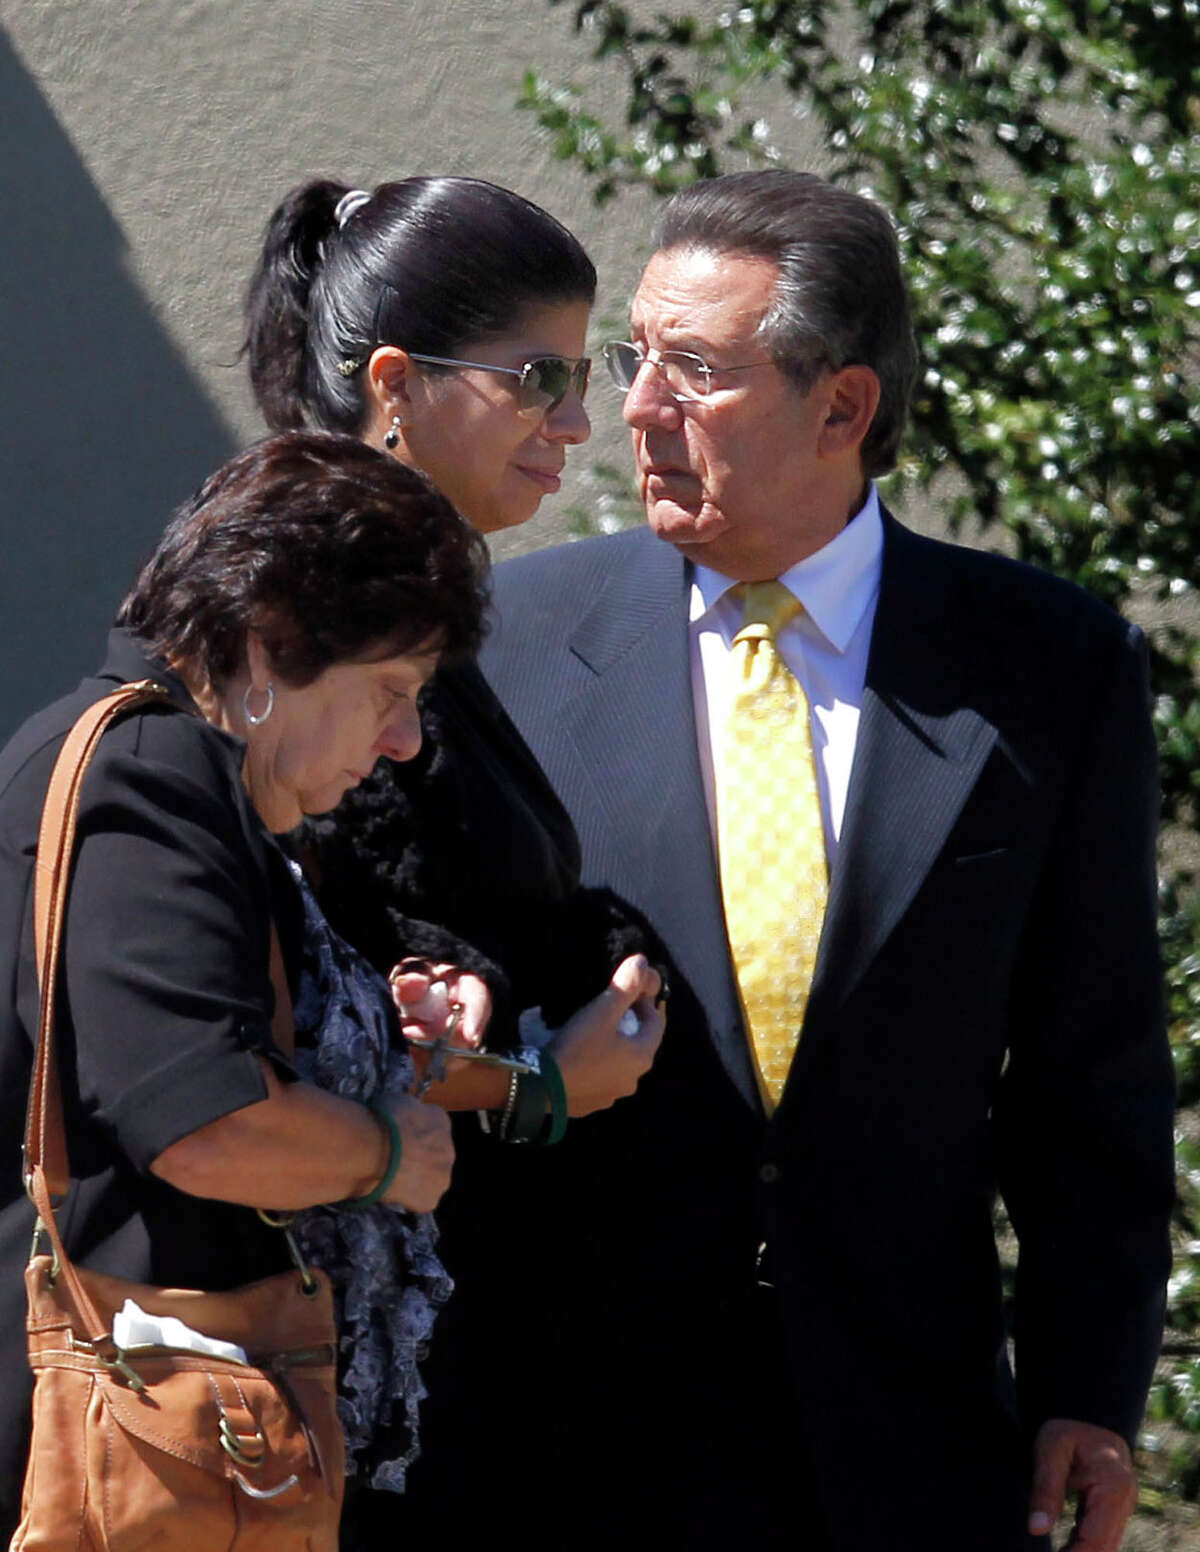 Ivette Rivera, center, fiancee of Empire State Building shooting victim Steve Ercolino, is flanked by the victim's parents, Rosalie and Frank Ercolino, as they walk to their car after a funeral mass at Our Lady of Sorrows church, Wednesday, Aug. 29, 2012, in White Plains, N.Y. The 41-year-old Ercolino was fatally shot in the head Friday by a former co-worker who blamed him for being laid off last year from a company with offices near the Empire State Building. (AP Photo/Jason DeCrow)